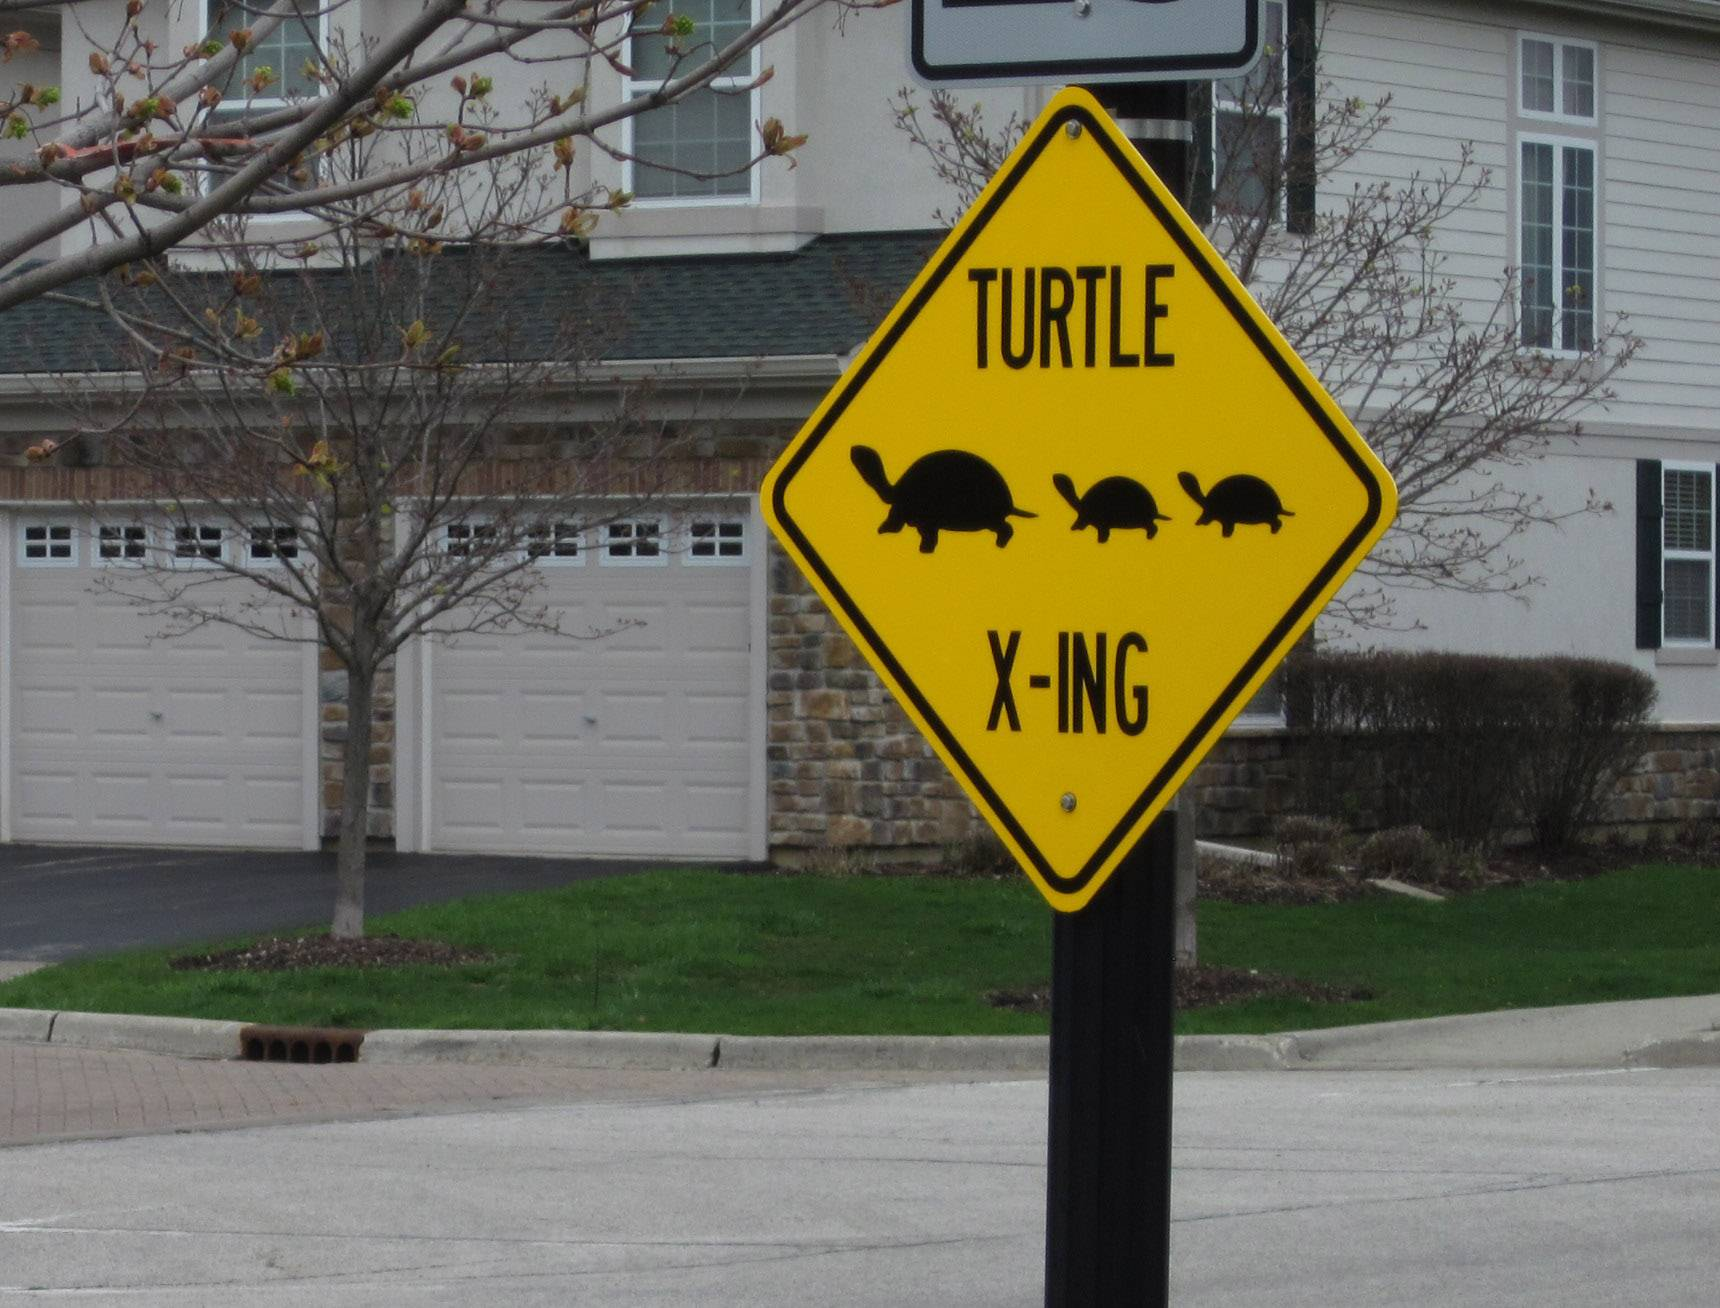 Vernon Hills has put up a temporary turtle crossing sign on Hazeltime Drive in the upscale Greggs Landing subdivision.